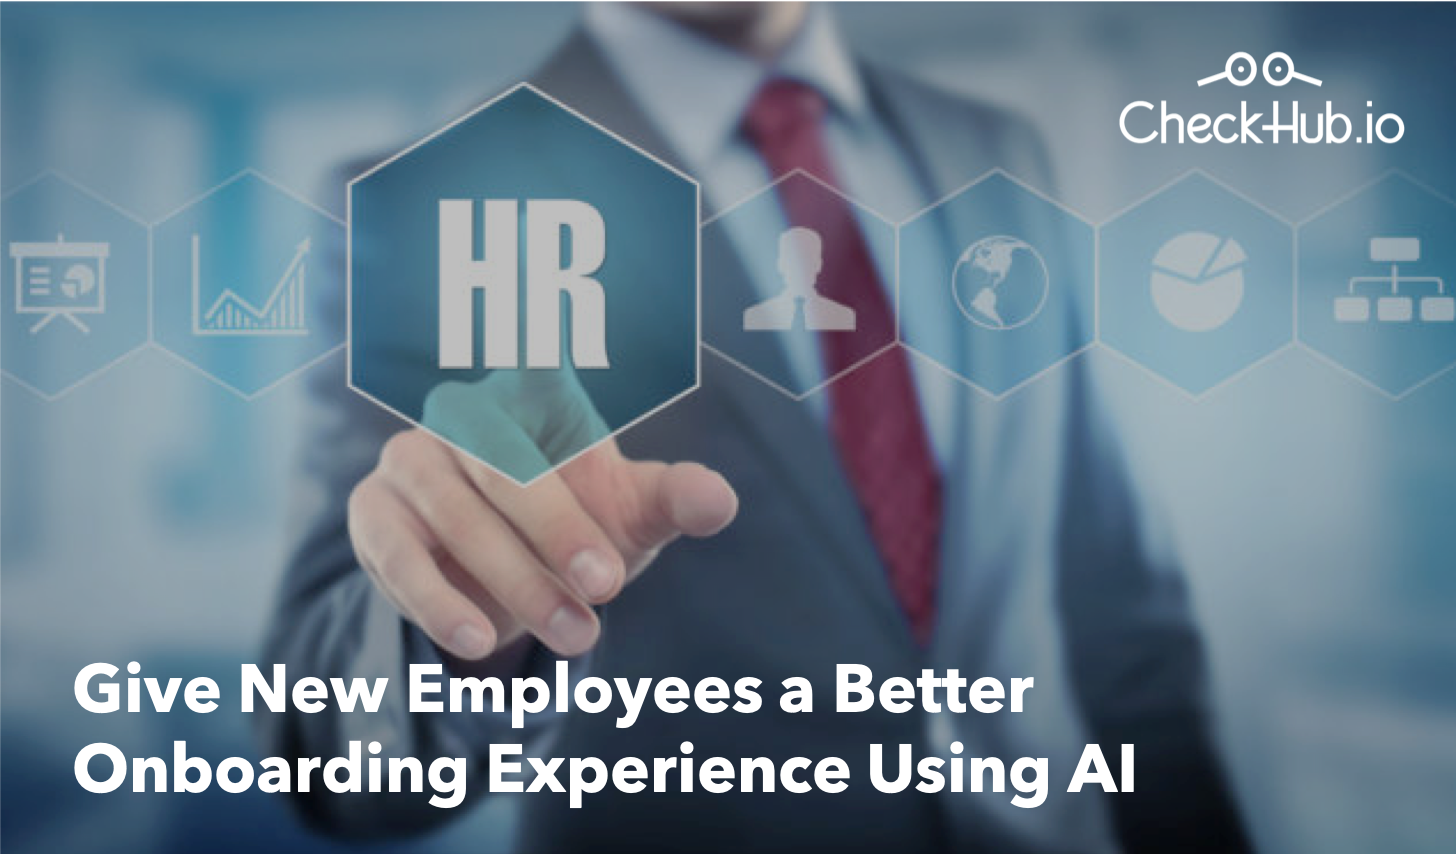 Give New Employees a Better Onboarding Experience Using AI